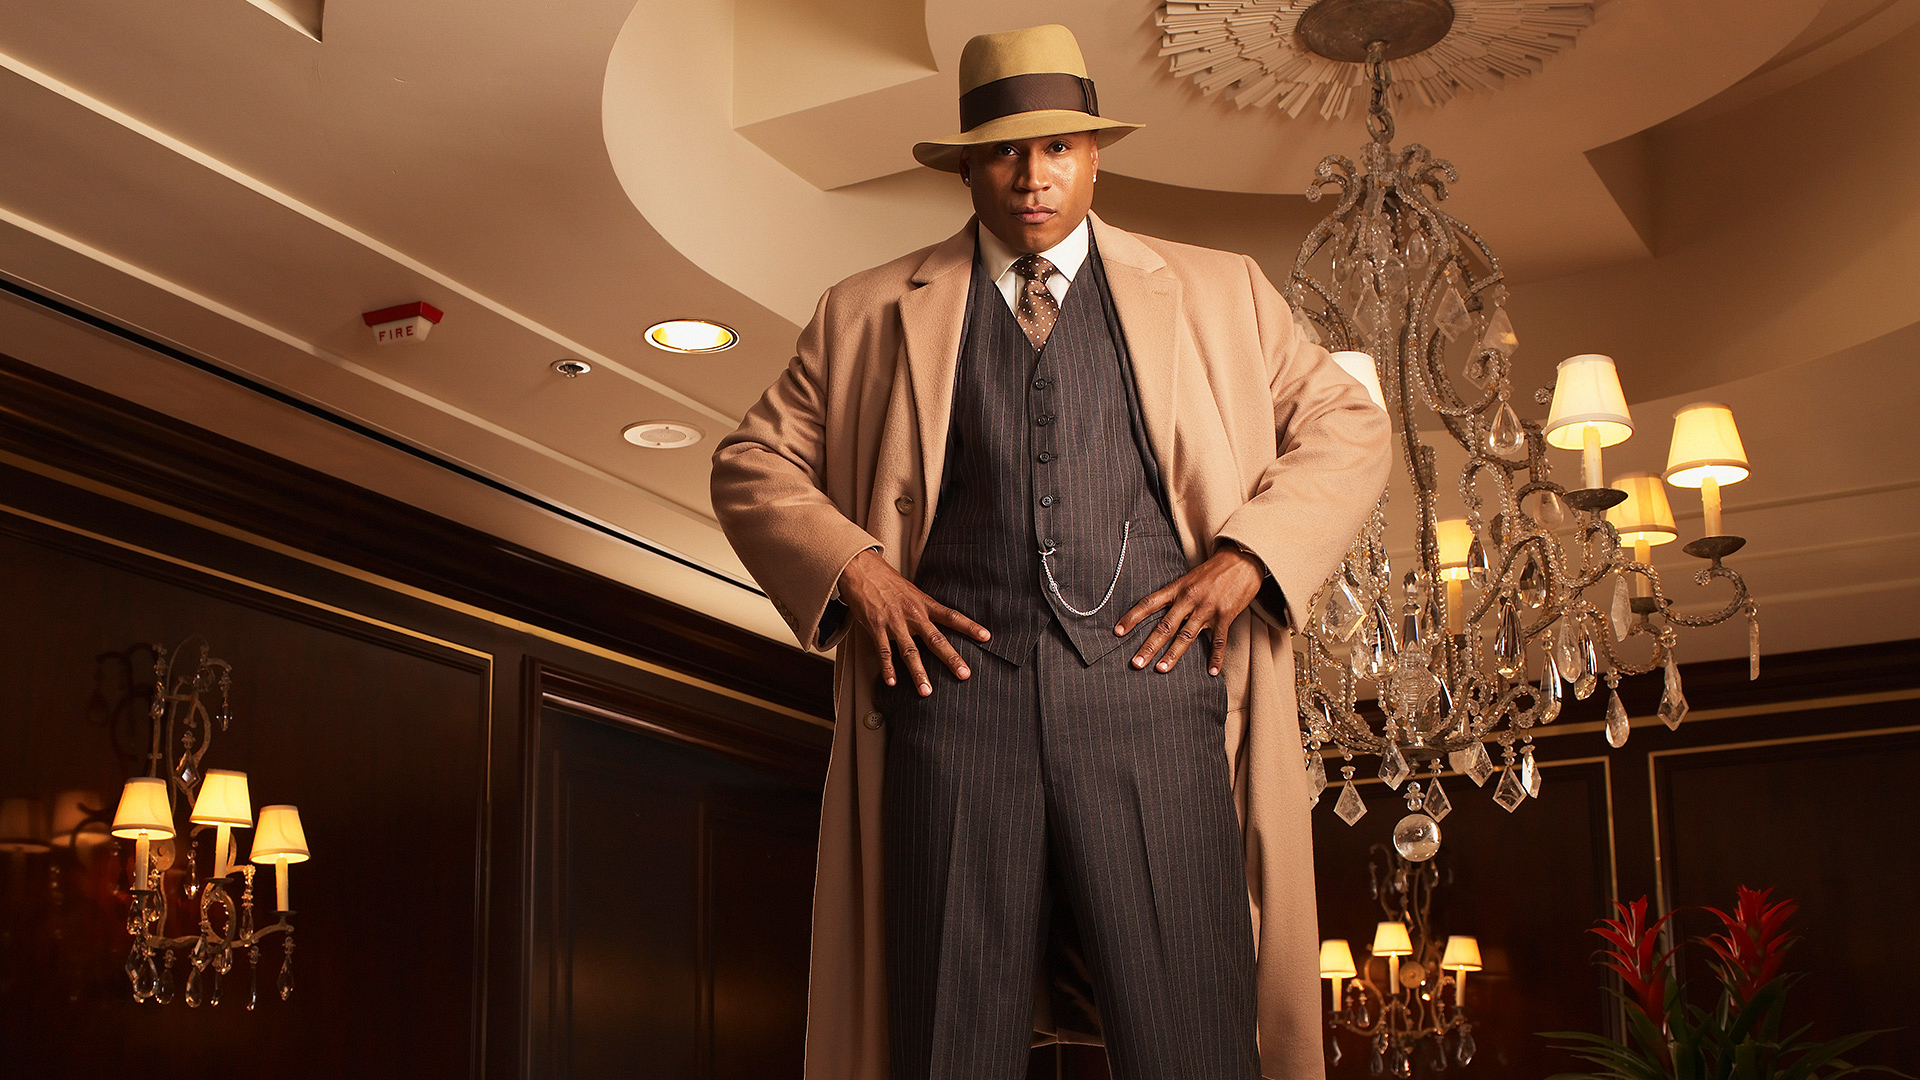 LL COOL J is right out of the roaring 20s